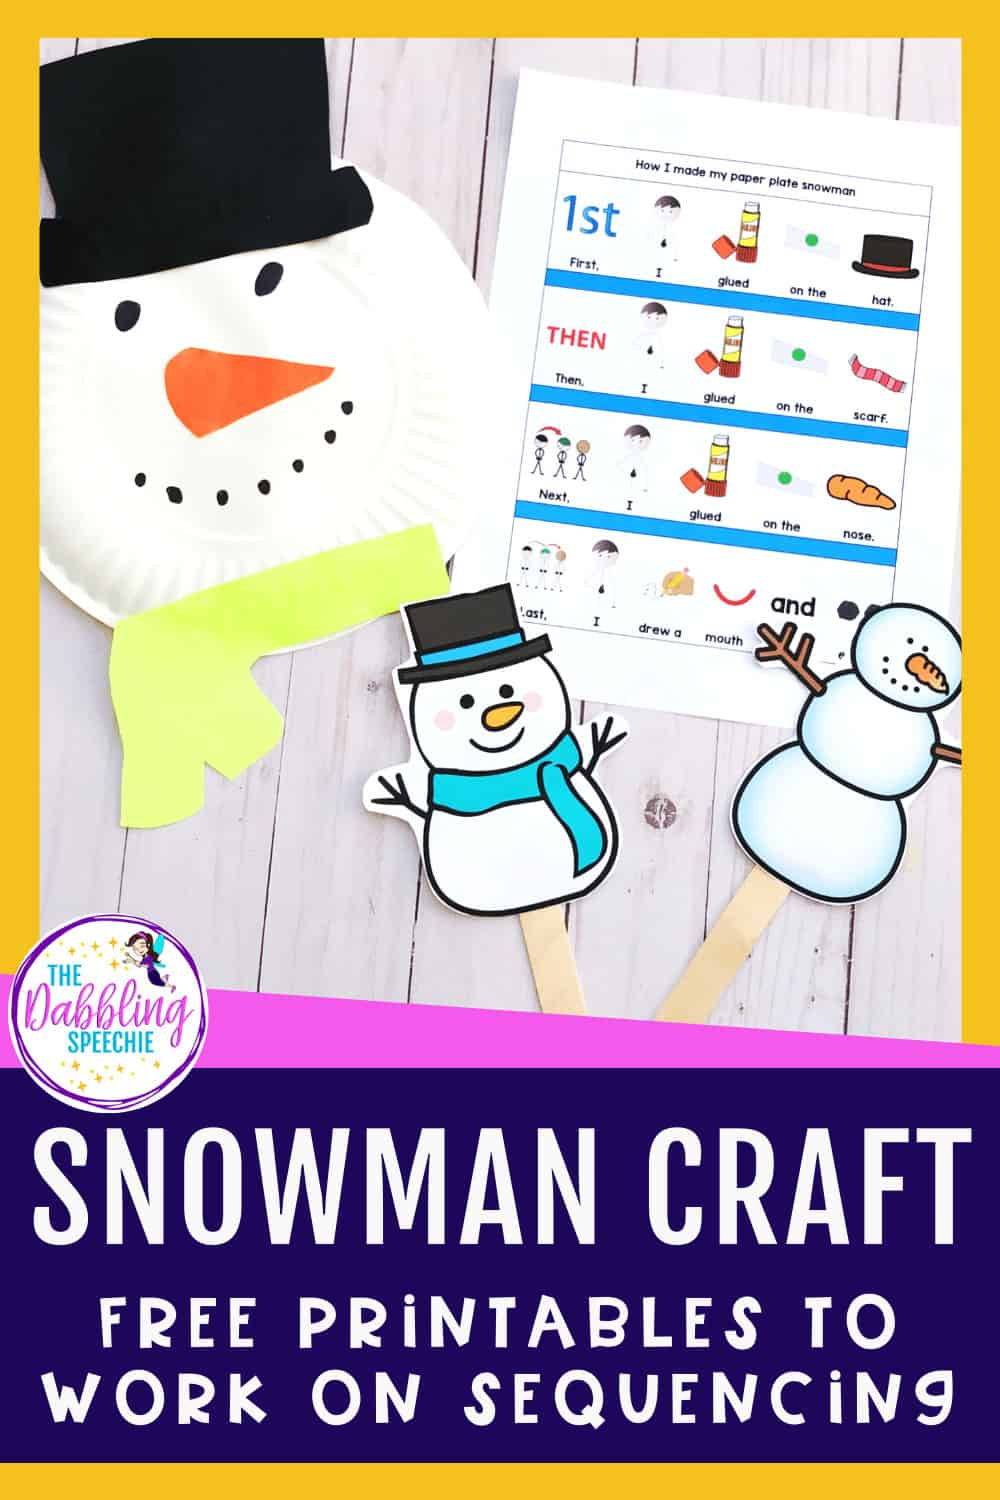 Paper Plate Snowman Craft for your Mod-Severe Students